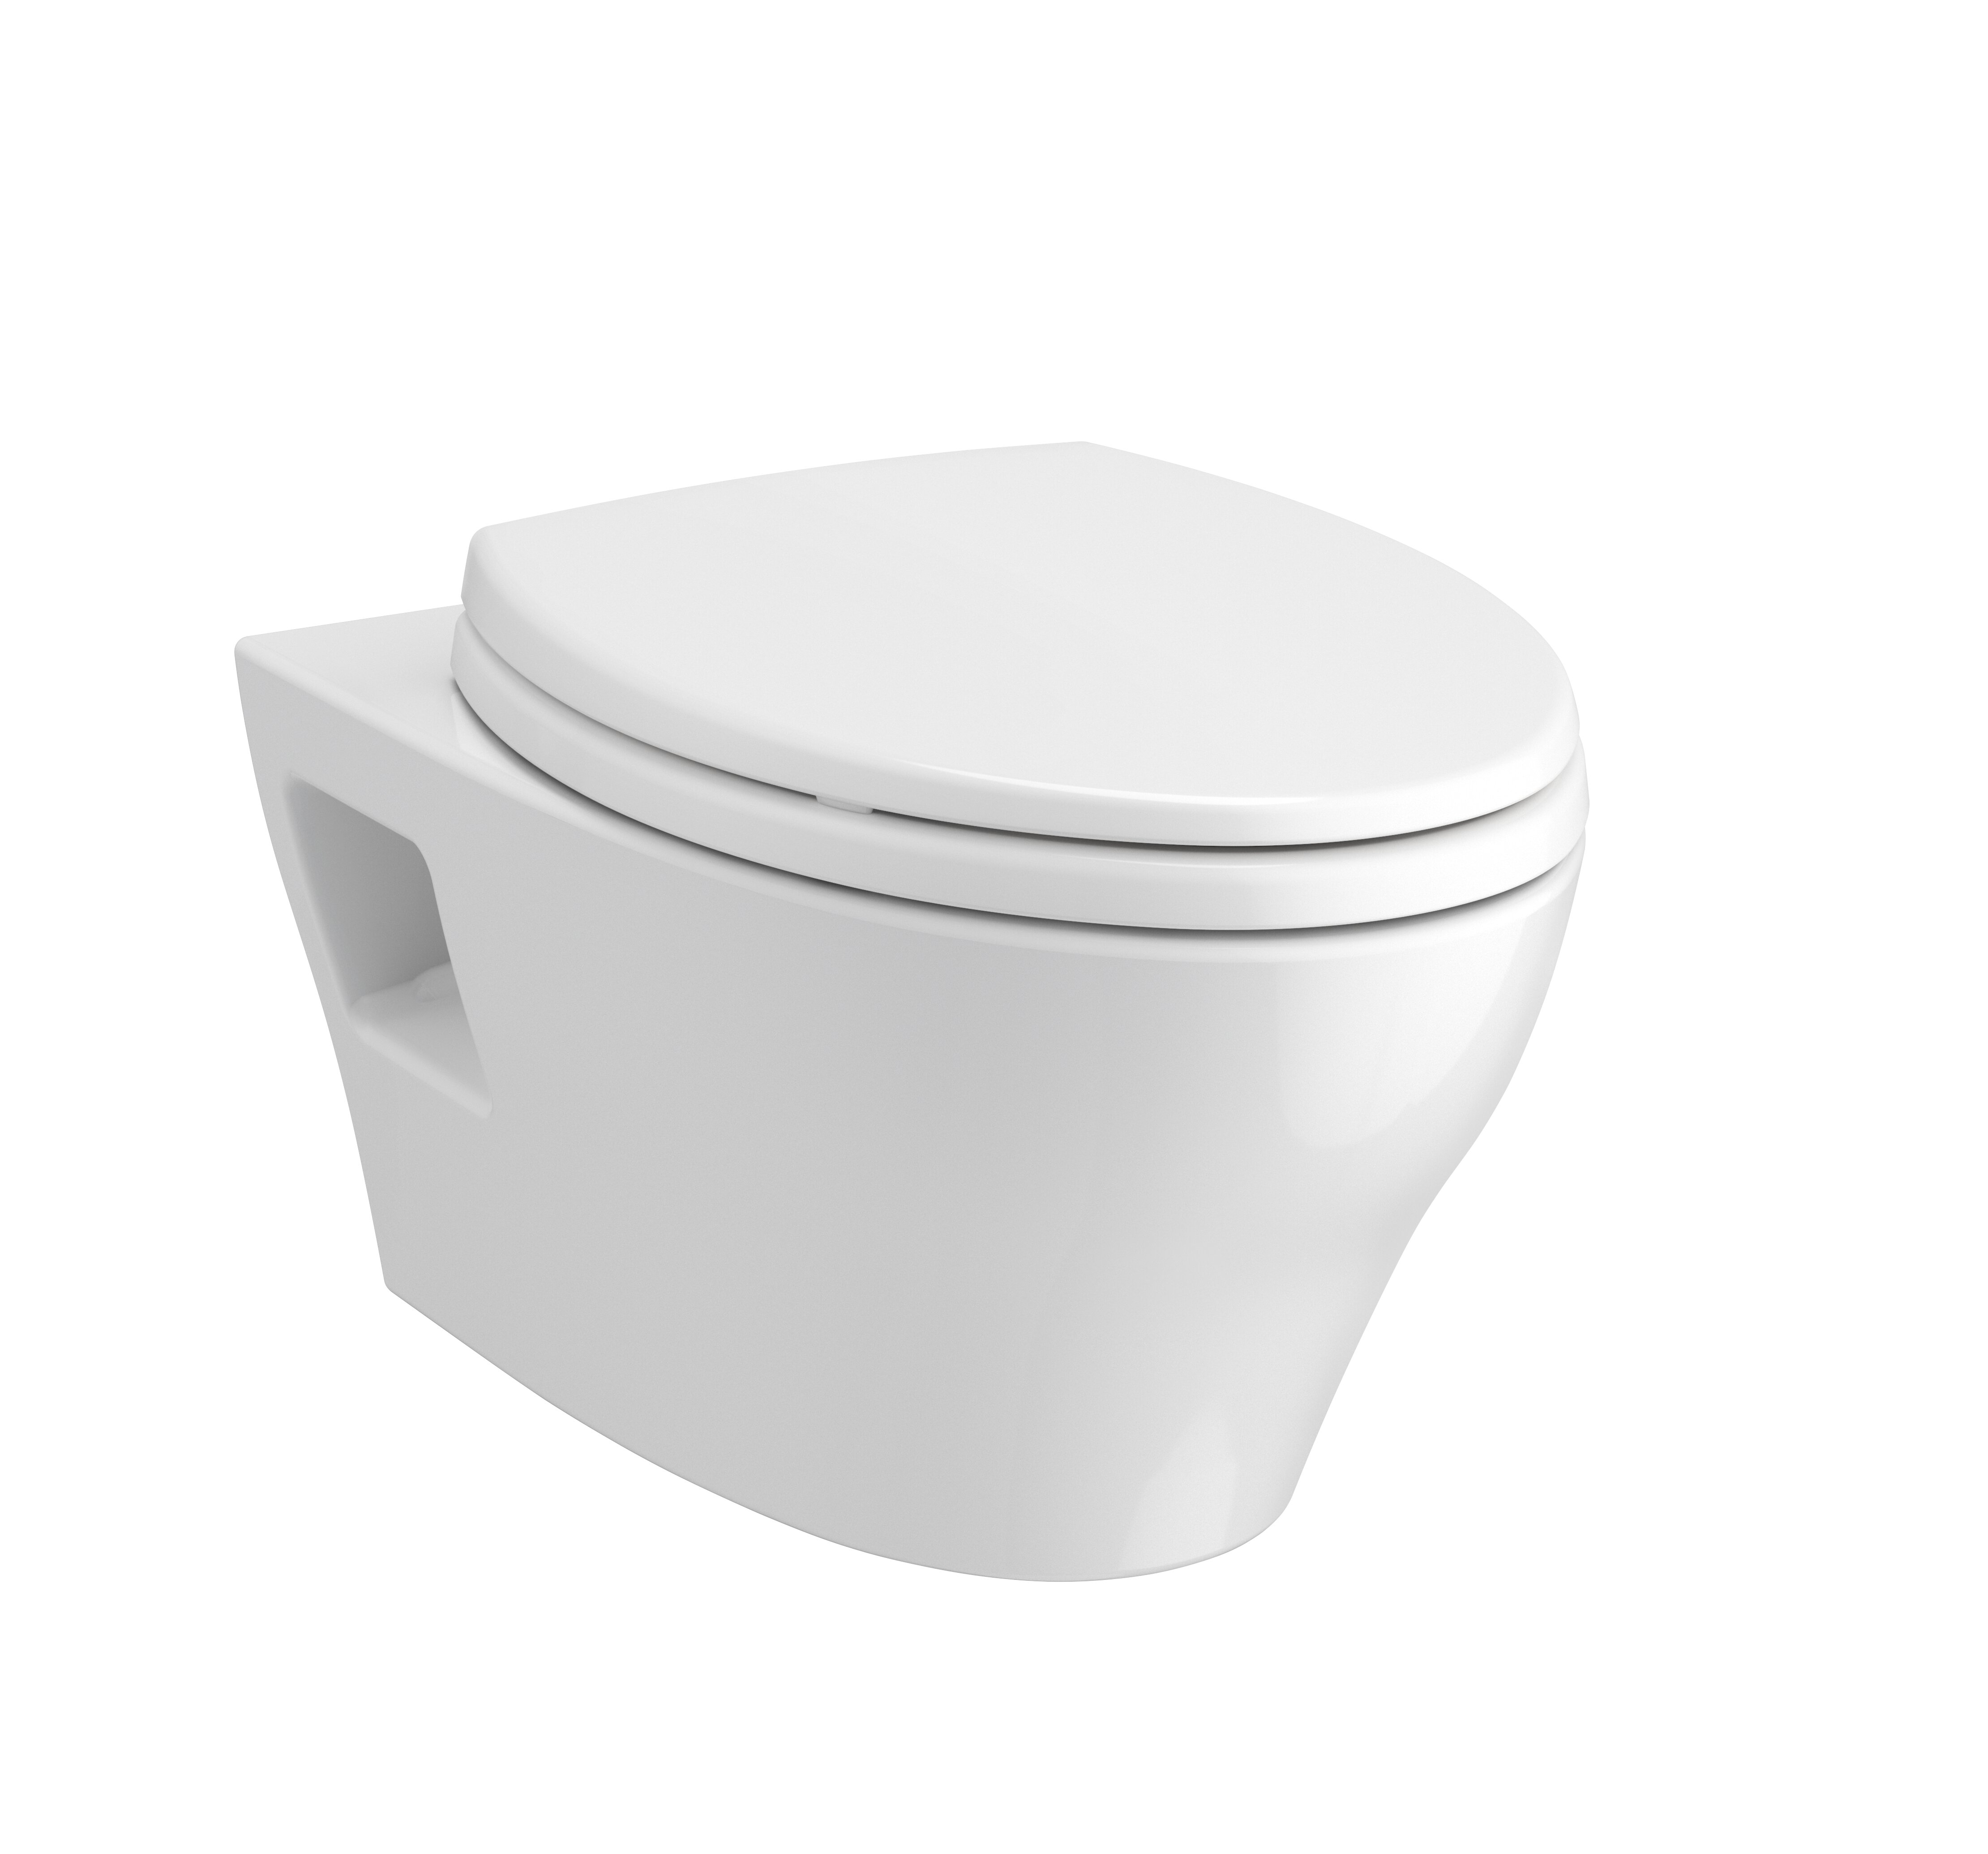 Toto Ep Wall Hung Elongated Toilet